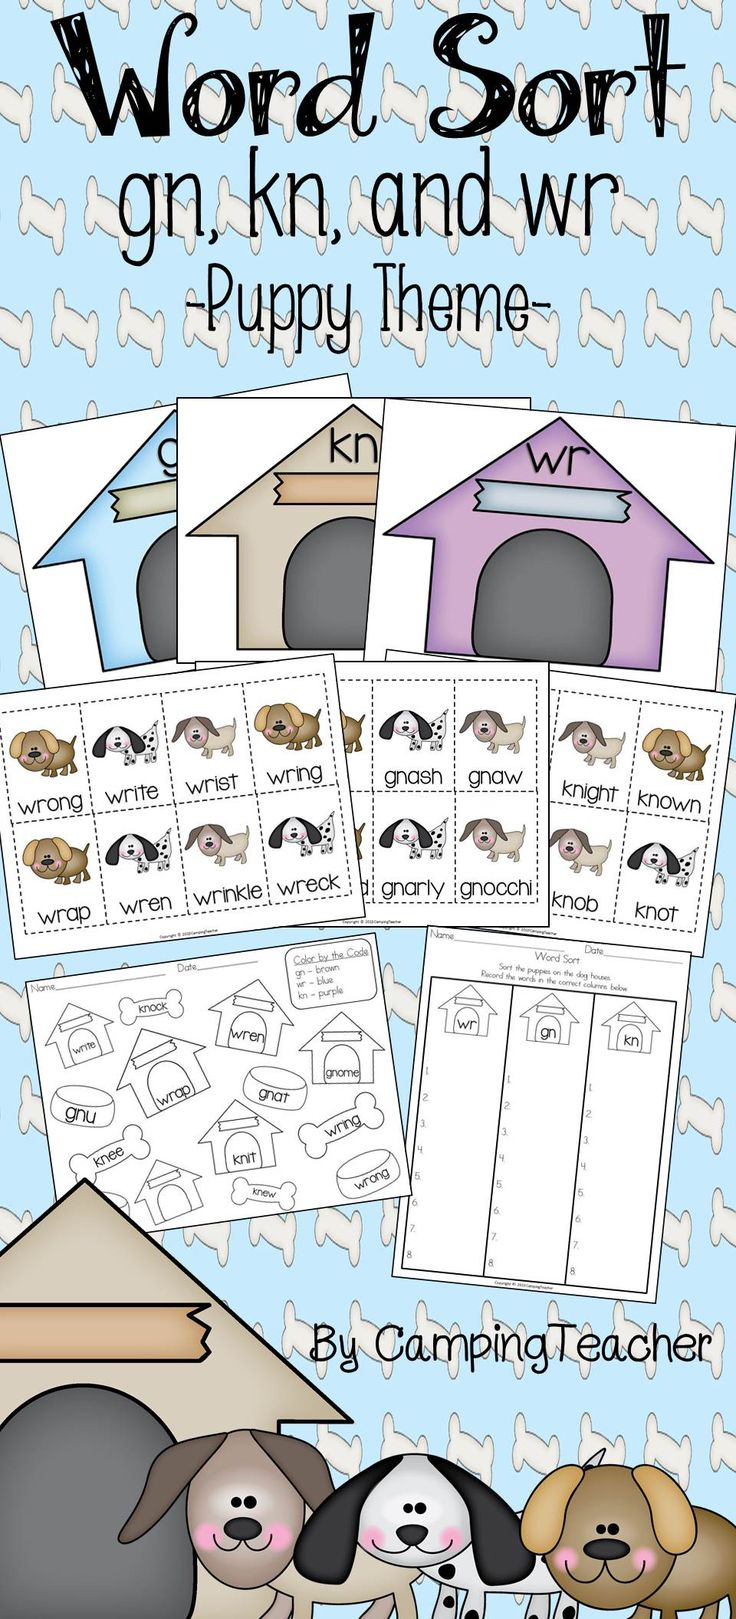 19 best images about wn,gn,kn on Pinterest | Words, Activities and ...